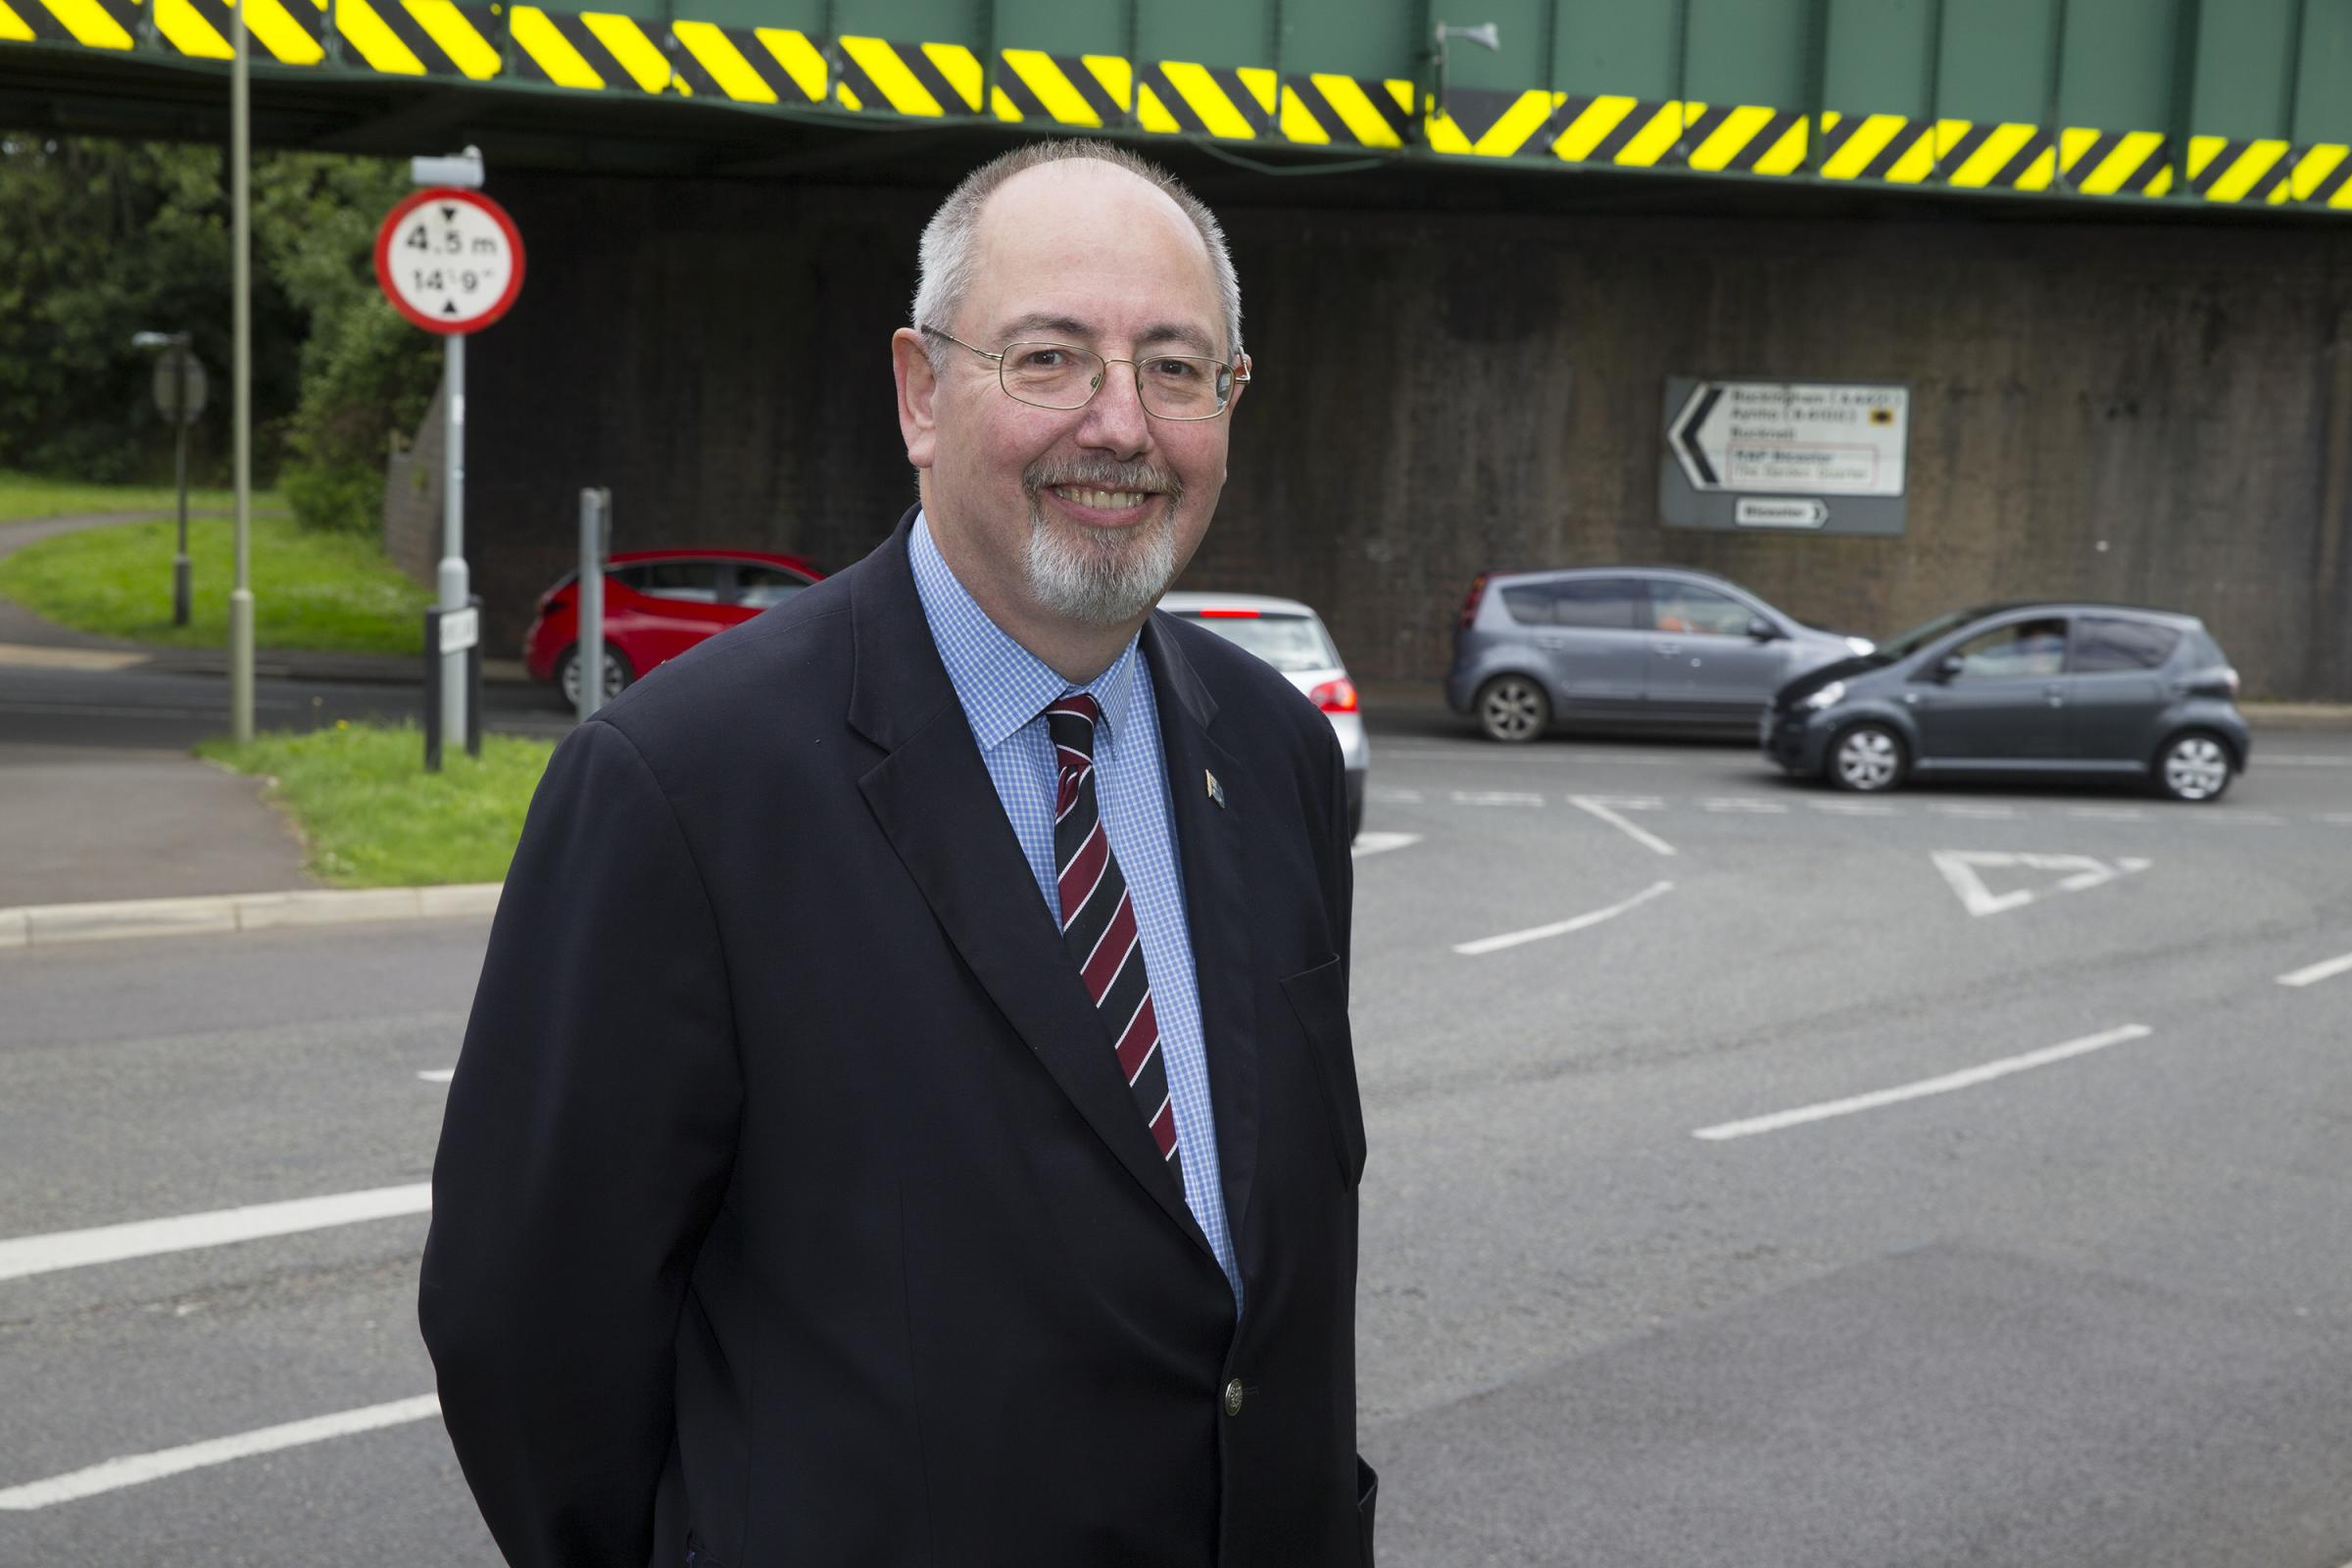 Campaigners say councillor's Oxford to Cambridge Expressway motion is wrong